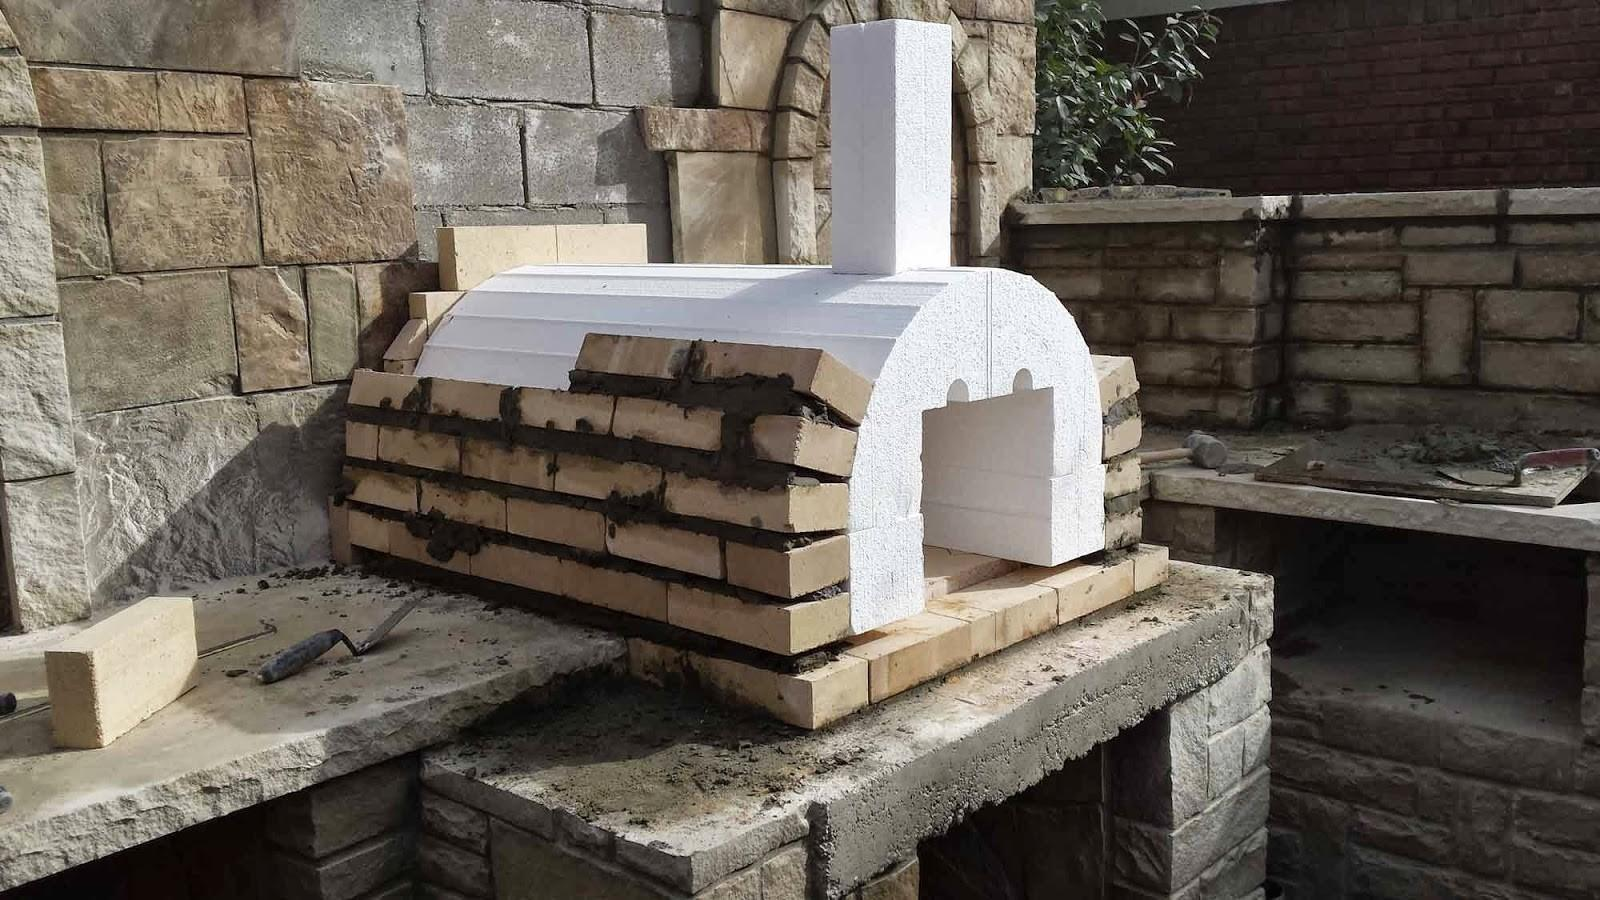 Home Decor Wood Fired Pizza Oven Plans Wall Mounted